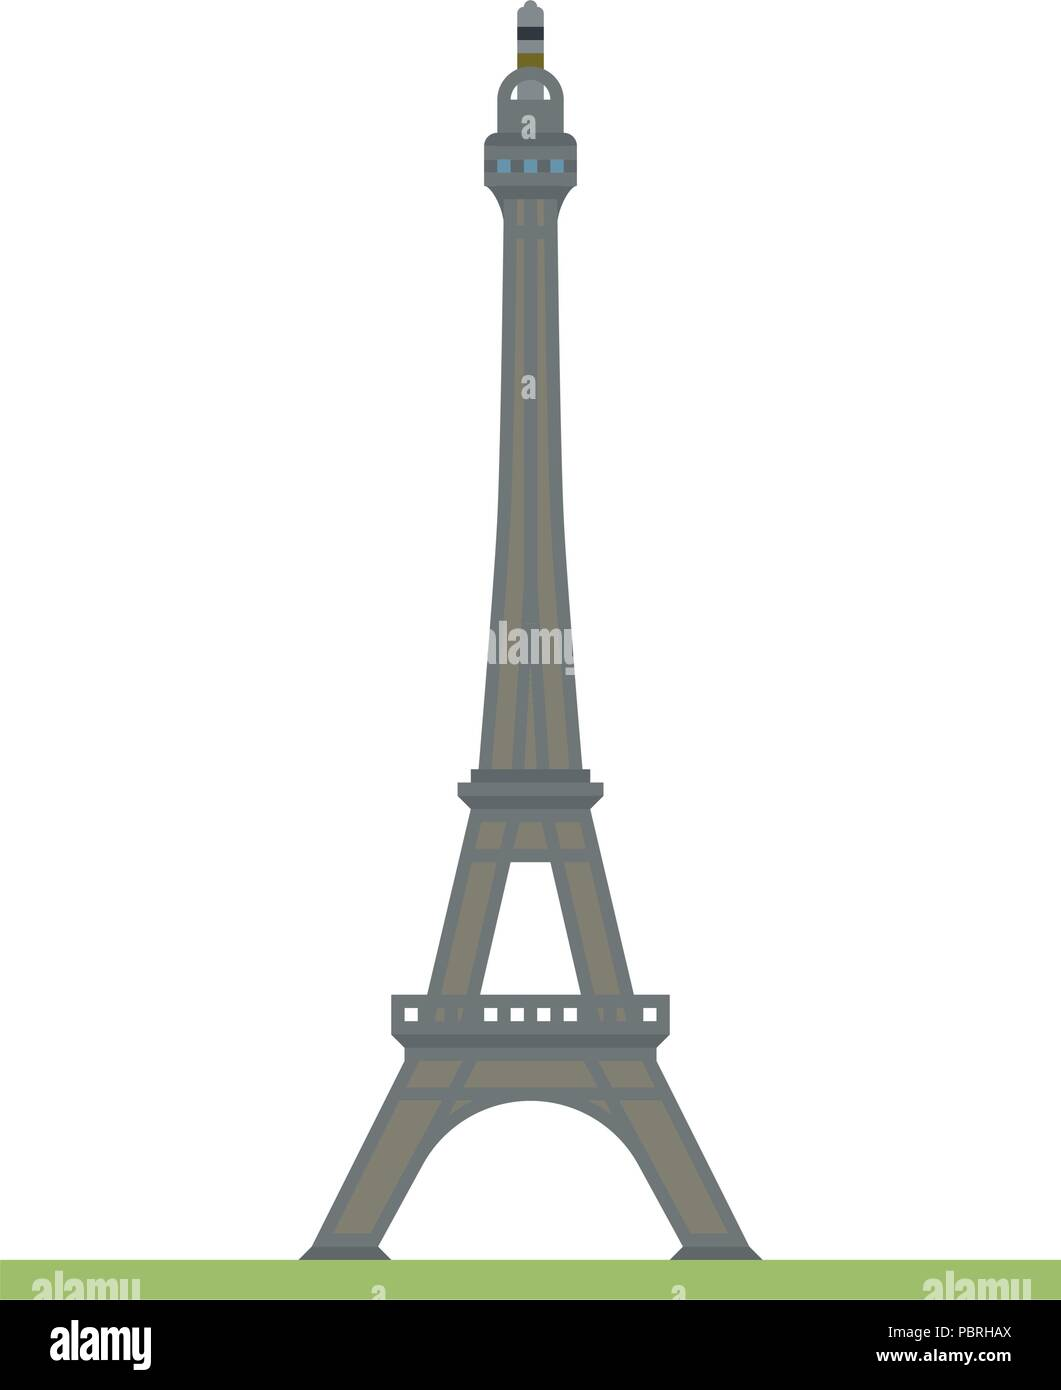 Flat design isolated vector icon of the Eiffel tower at Paris, France Stock Vector